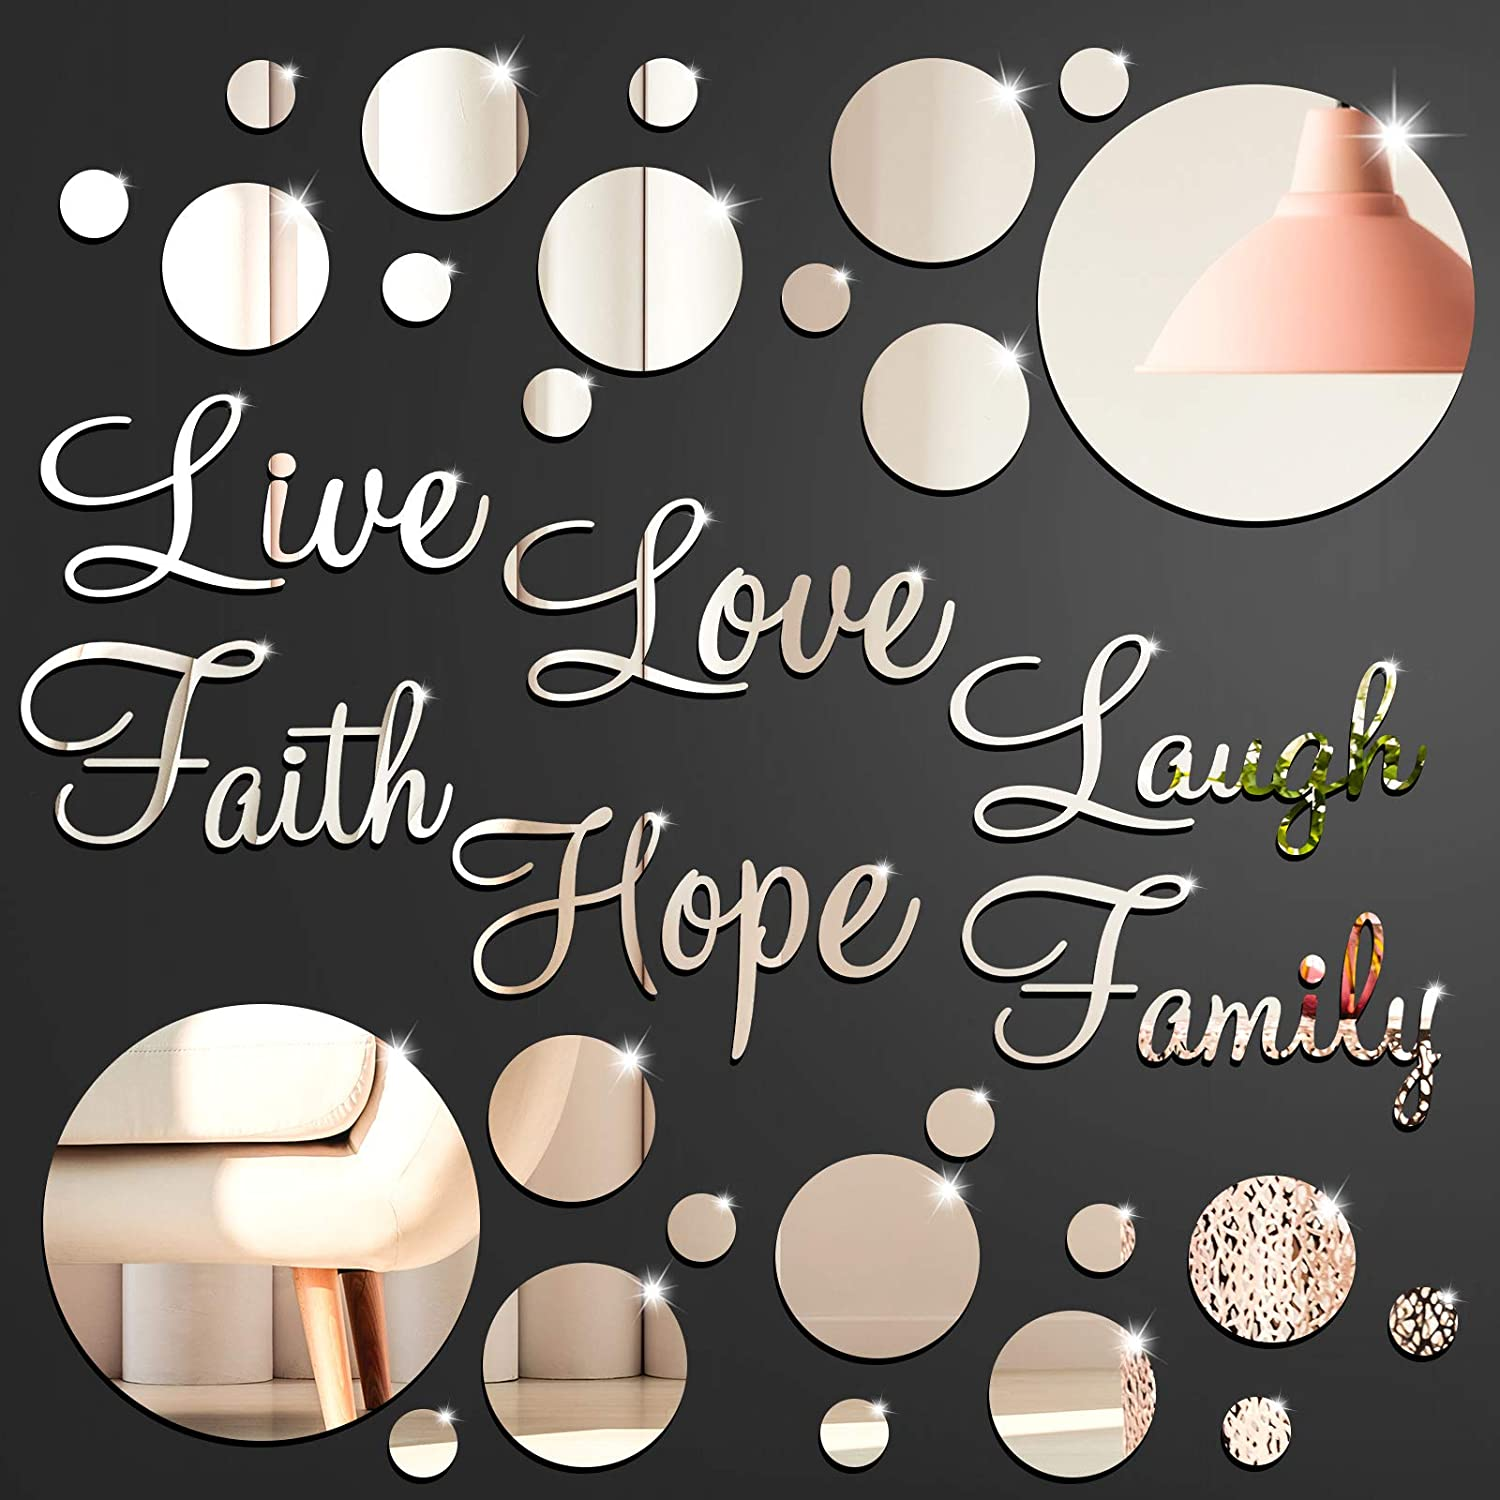 3D Acrylic Mirror Wall Decor Stickers DIY Silver Faith Live Laugh Hope Love Family Mirror Wall Decor Solid Circle Mirror Wall Decal for Home Office School Classroom Teen Dorm Room Decoration